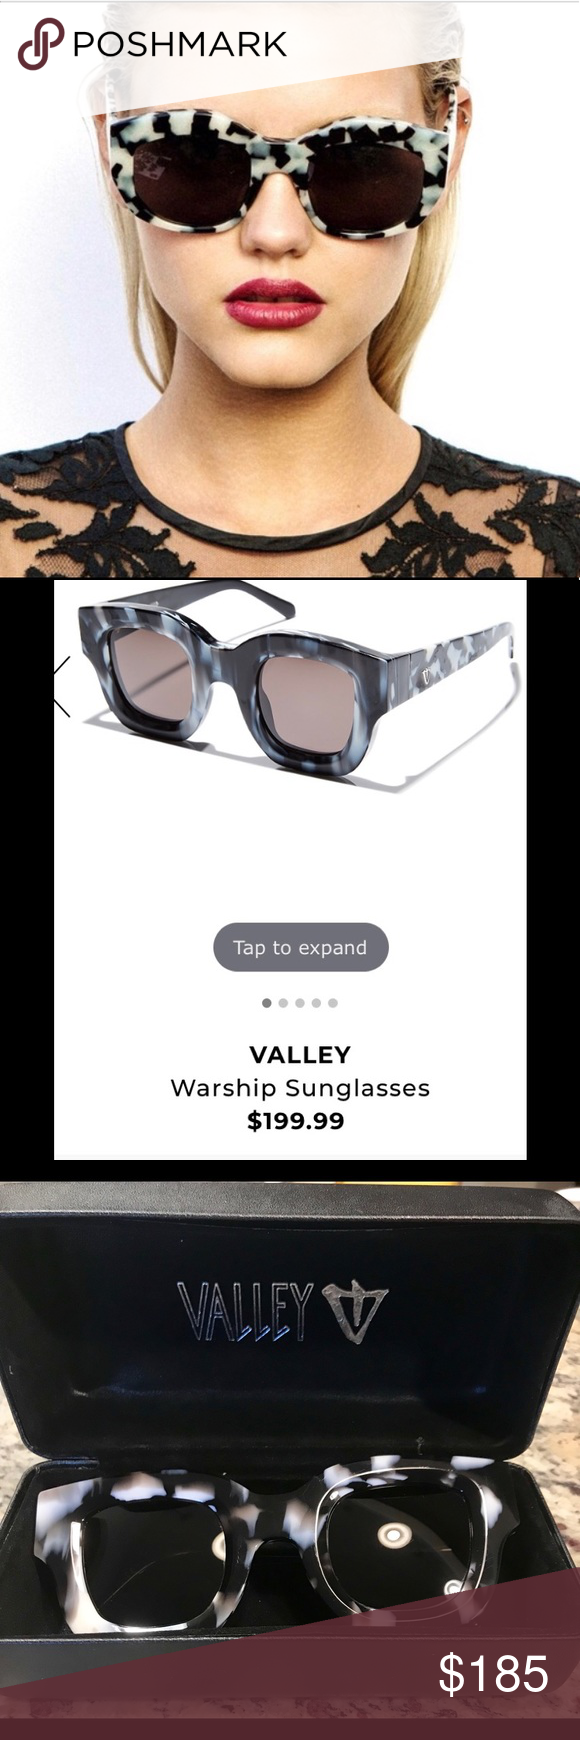 1e8ac194c17 New Valley Sunglasses Wore once Valley Eyewear Accessories Sunglasses